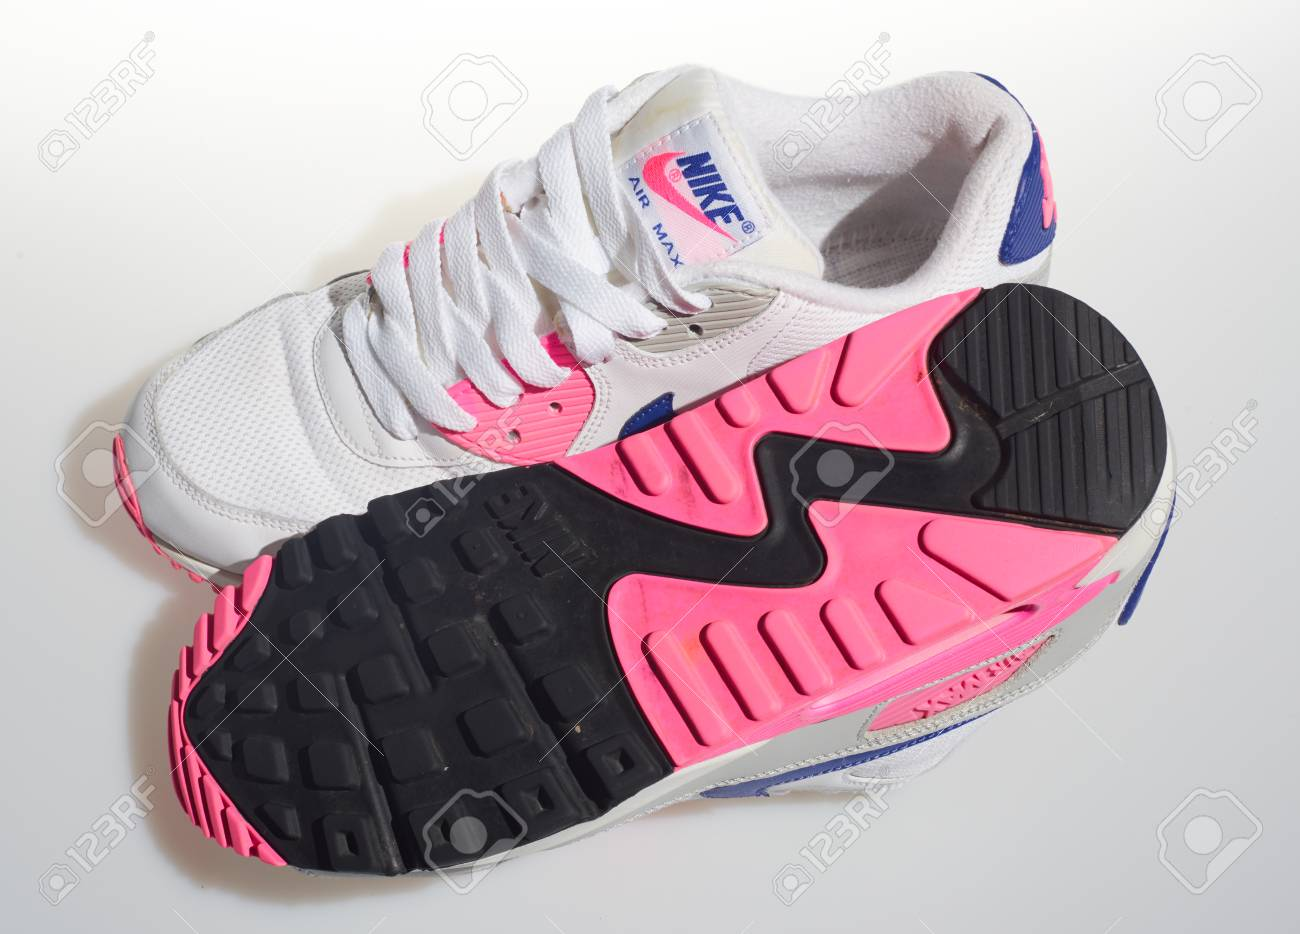 detailing 100% authentic autumn shoes london, englabnd, 05/08/2018 Nike Air max 90s, White, pink, purple,..